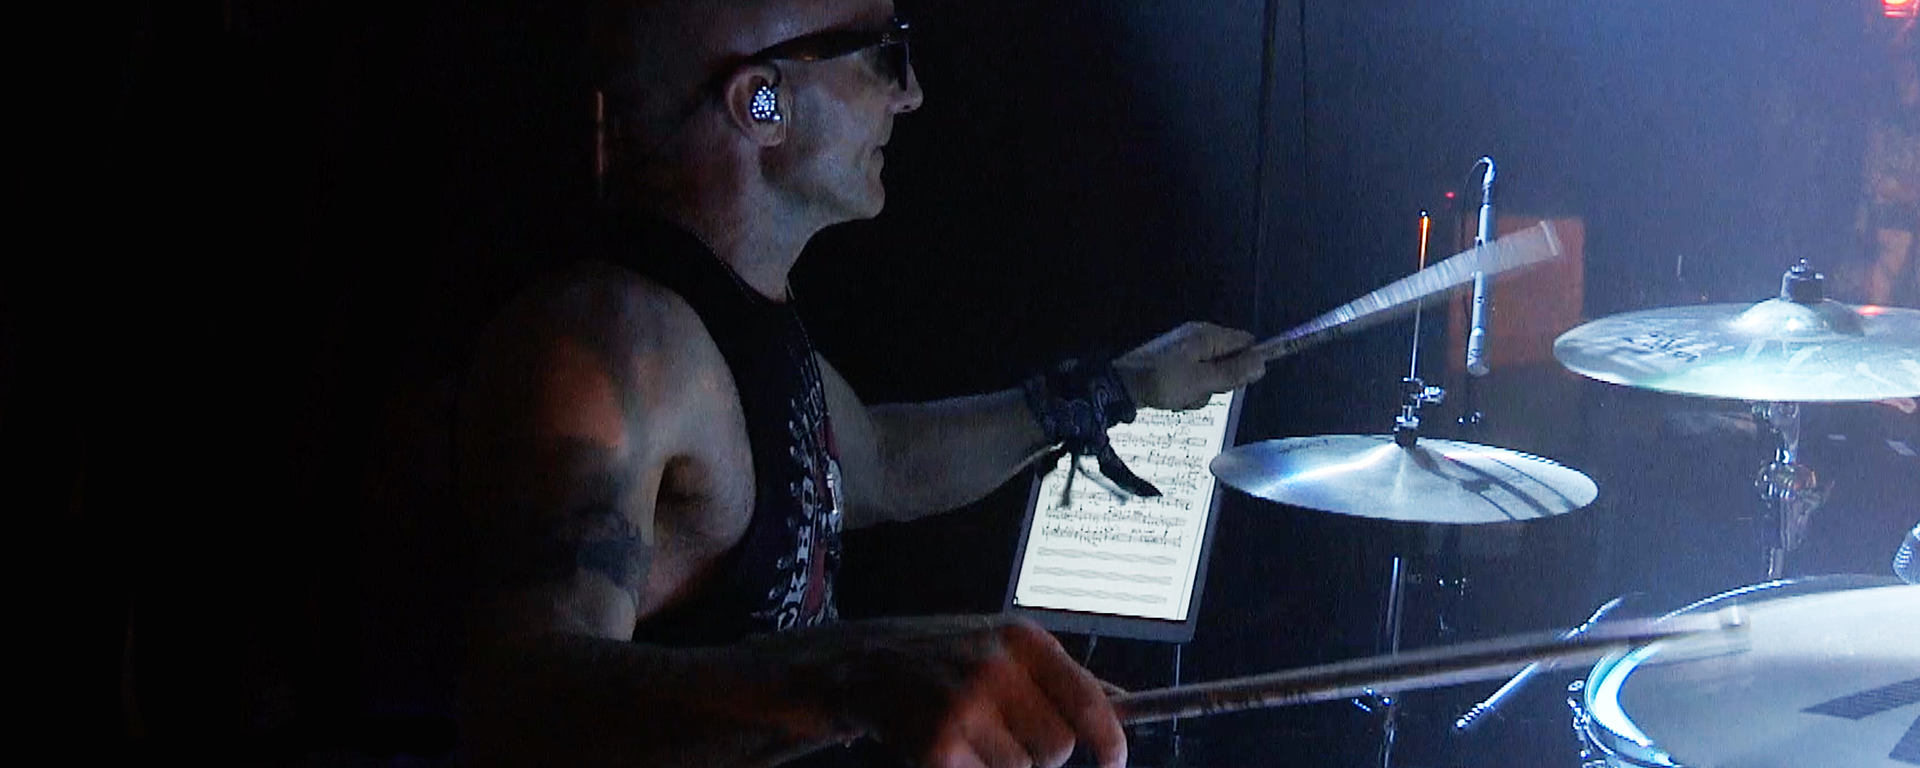 Kenny Aronoff with his MTP 440 DM go-to Snare mic